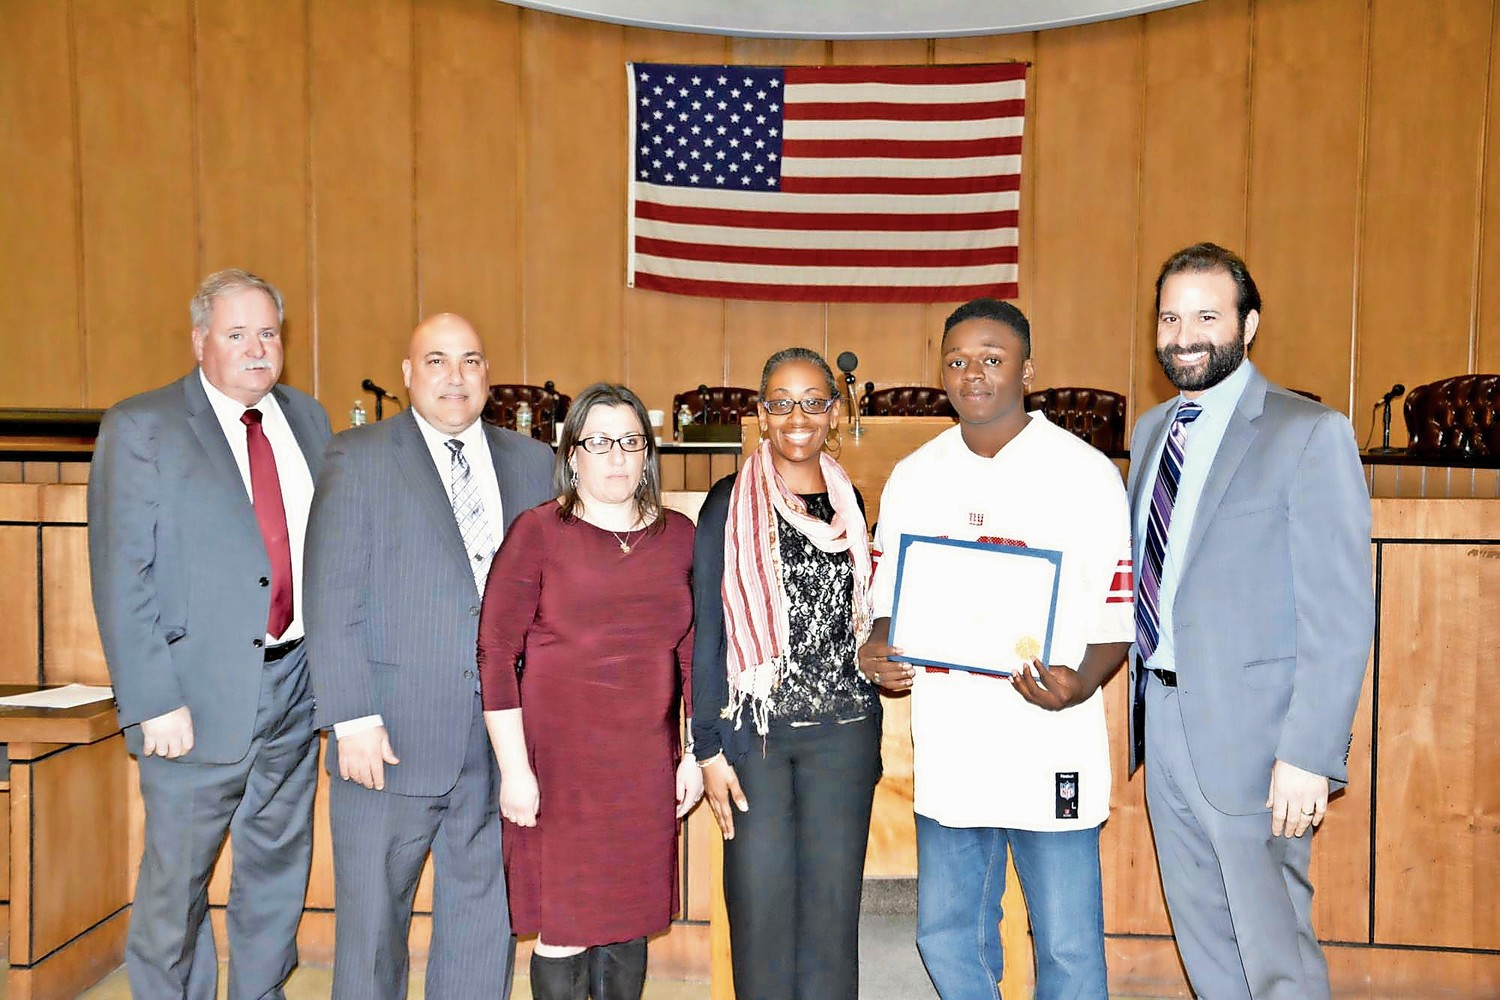 Acting City Manager Mike Tangney, far left, City Councilman John Bendo, Council Vice President Chumi Diamond, Brian Horne, Councilwoman Anissa Moore, and Council President Anthony Eramo at the Feb. 20 meeting, where Horne was honored for his contributions to the community.